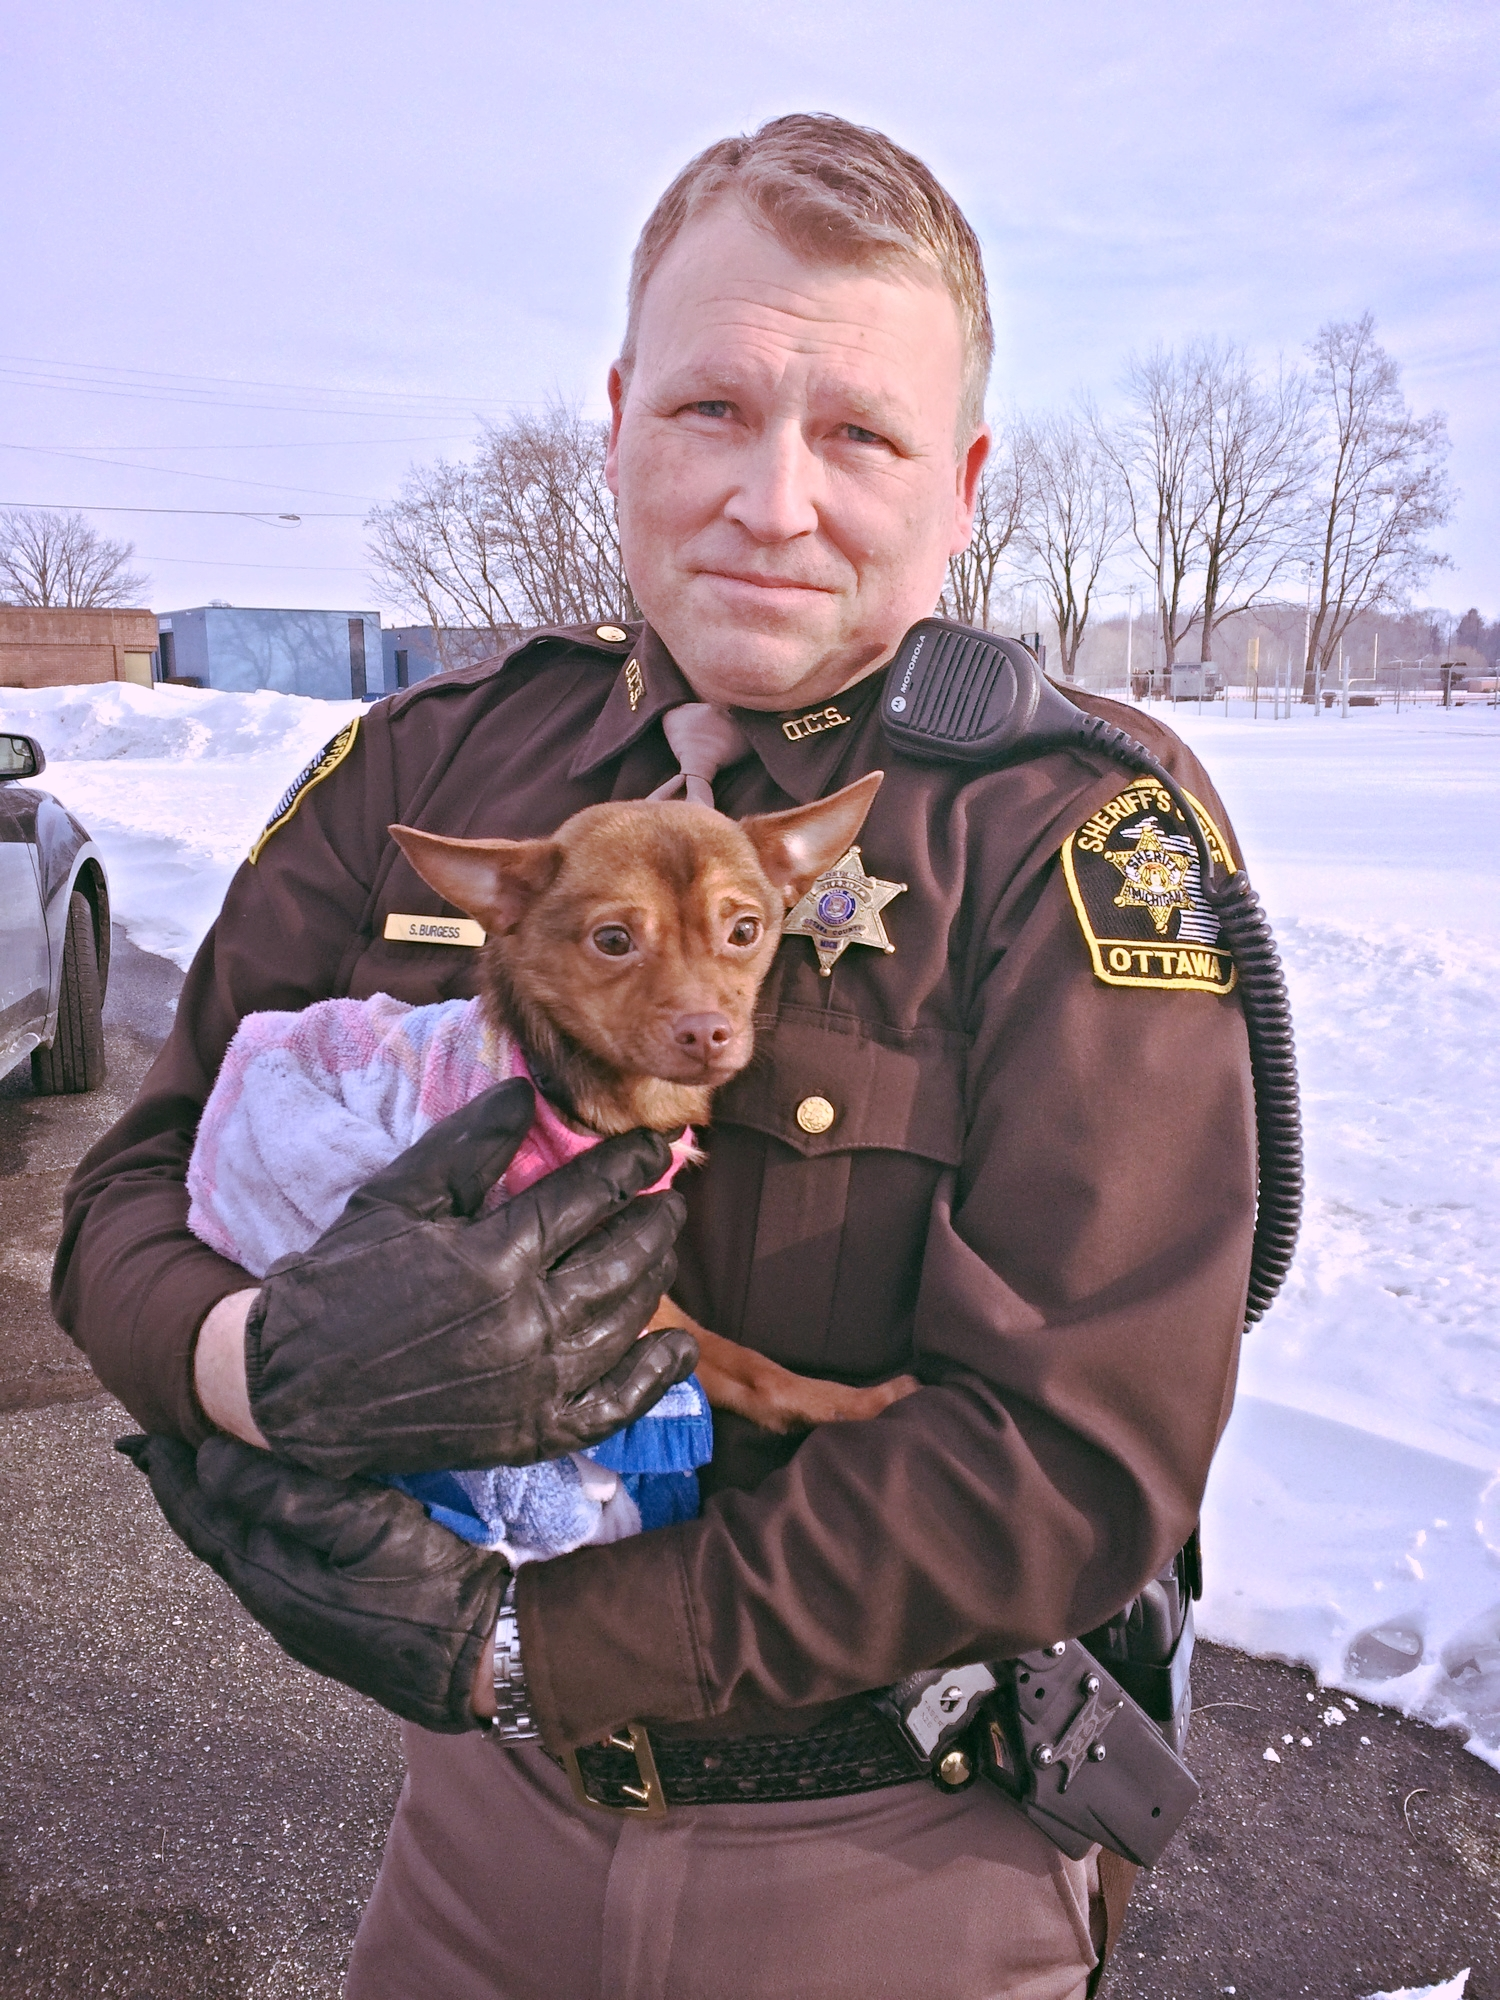 Officer Steve and Reese Witherspoon all wrapped up! The Beauty of Trust!